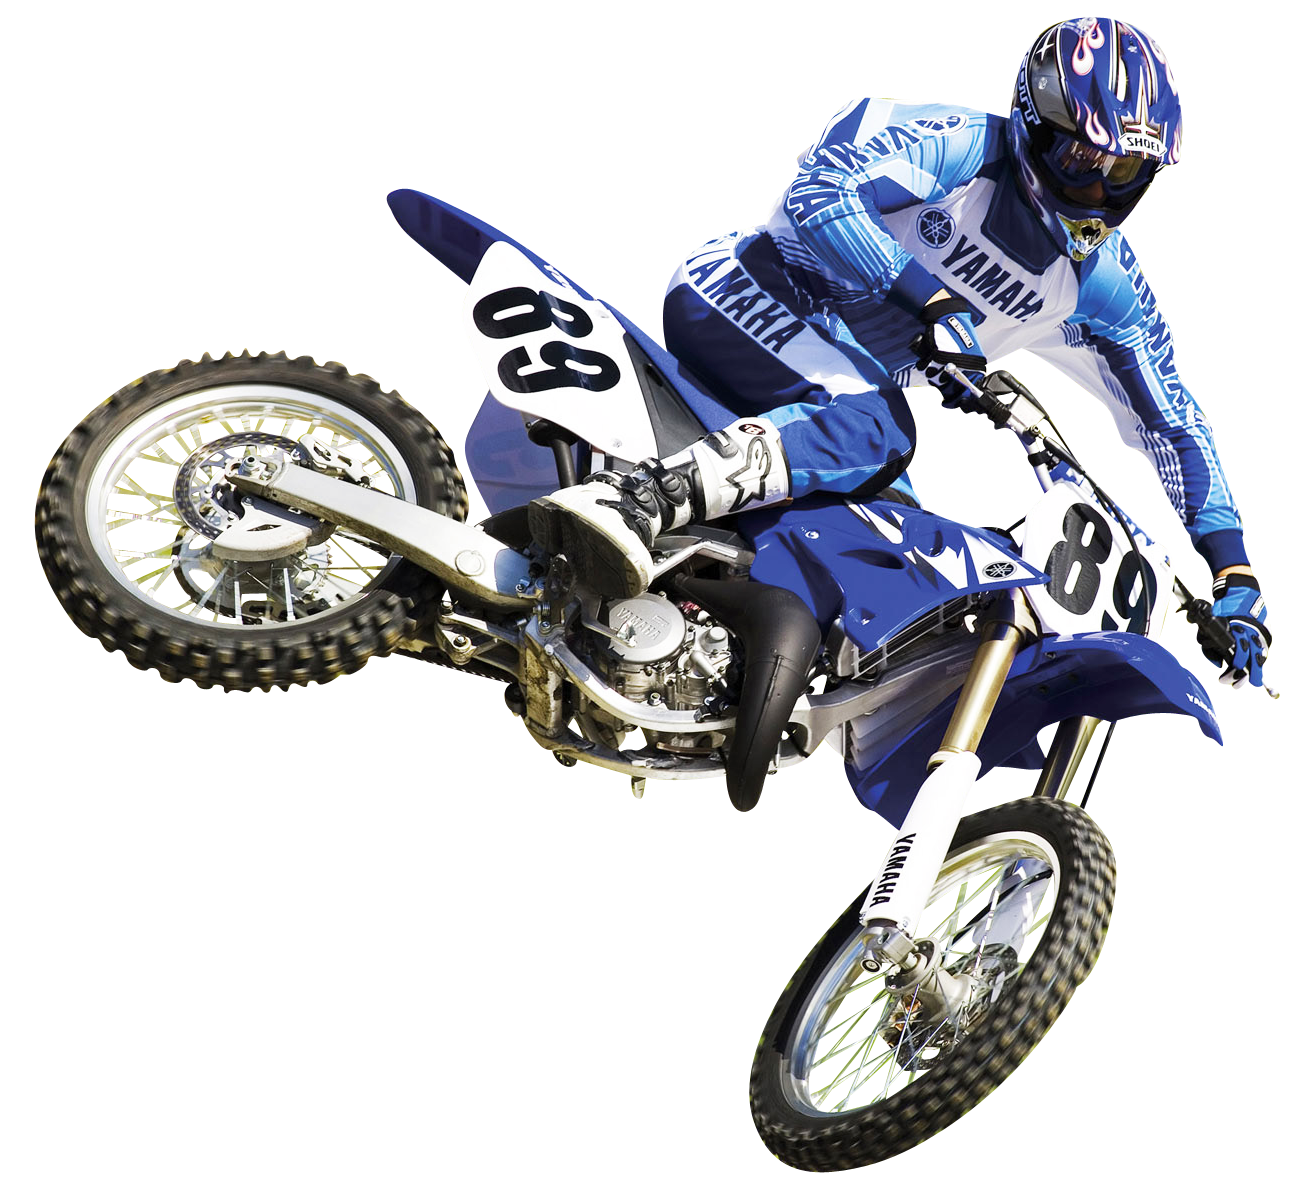 Motocross Racer PNG Image